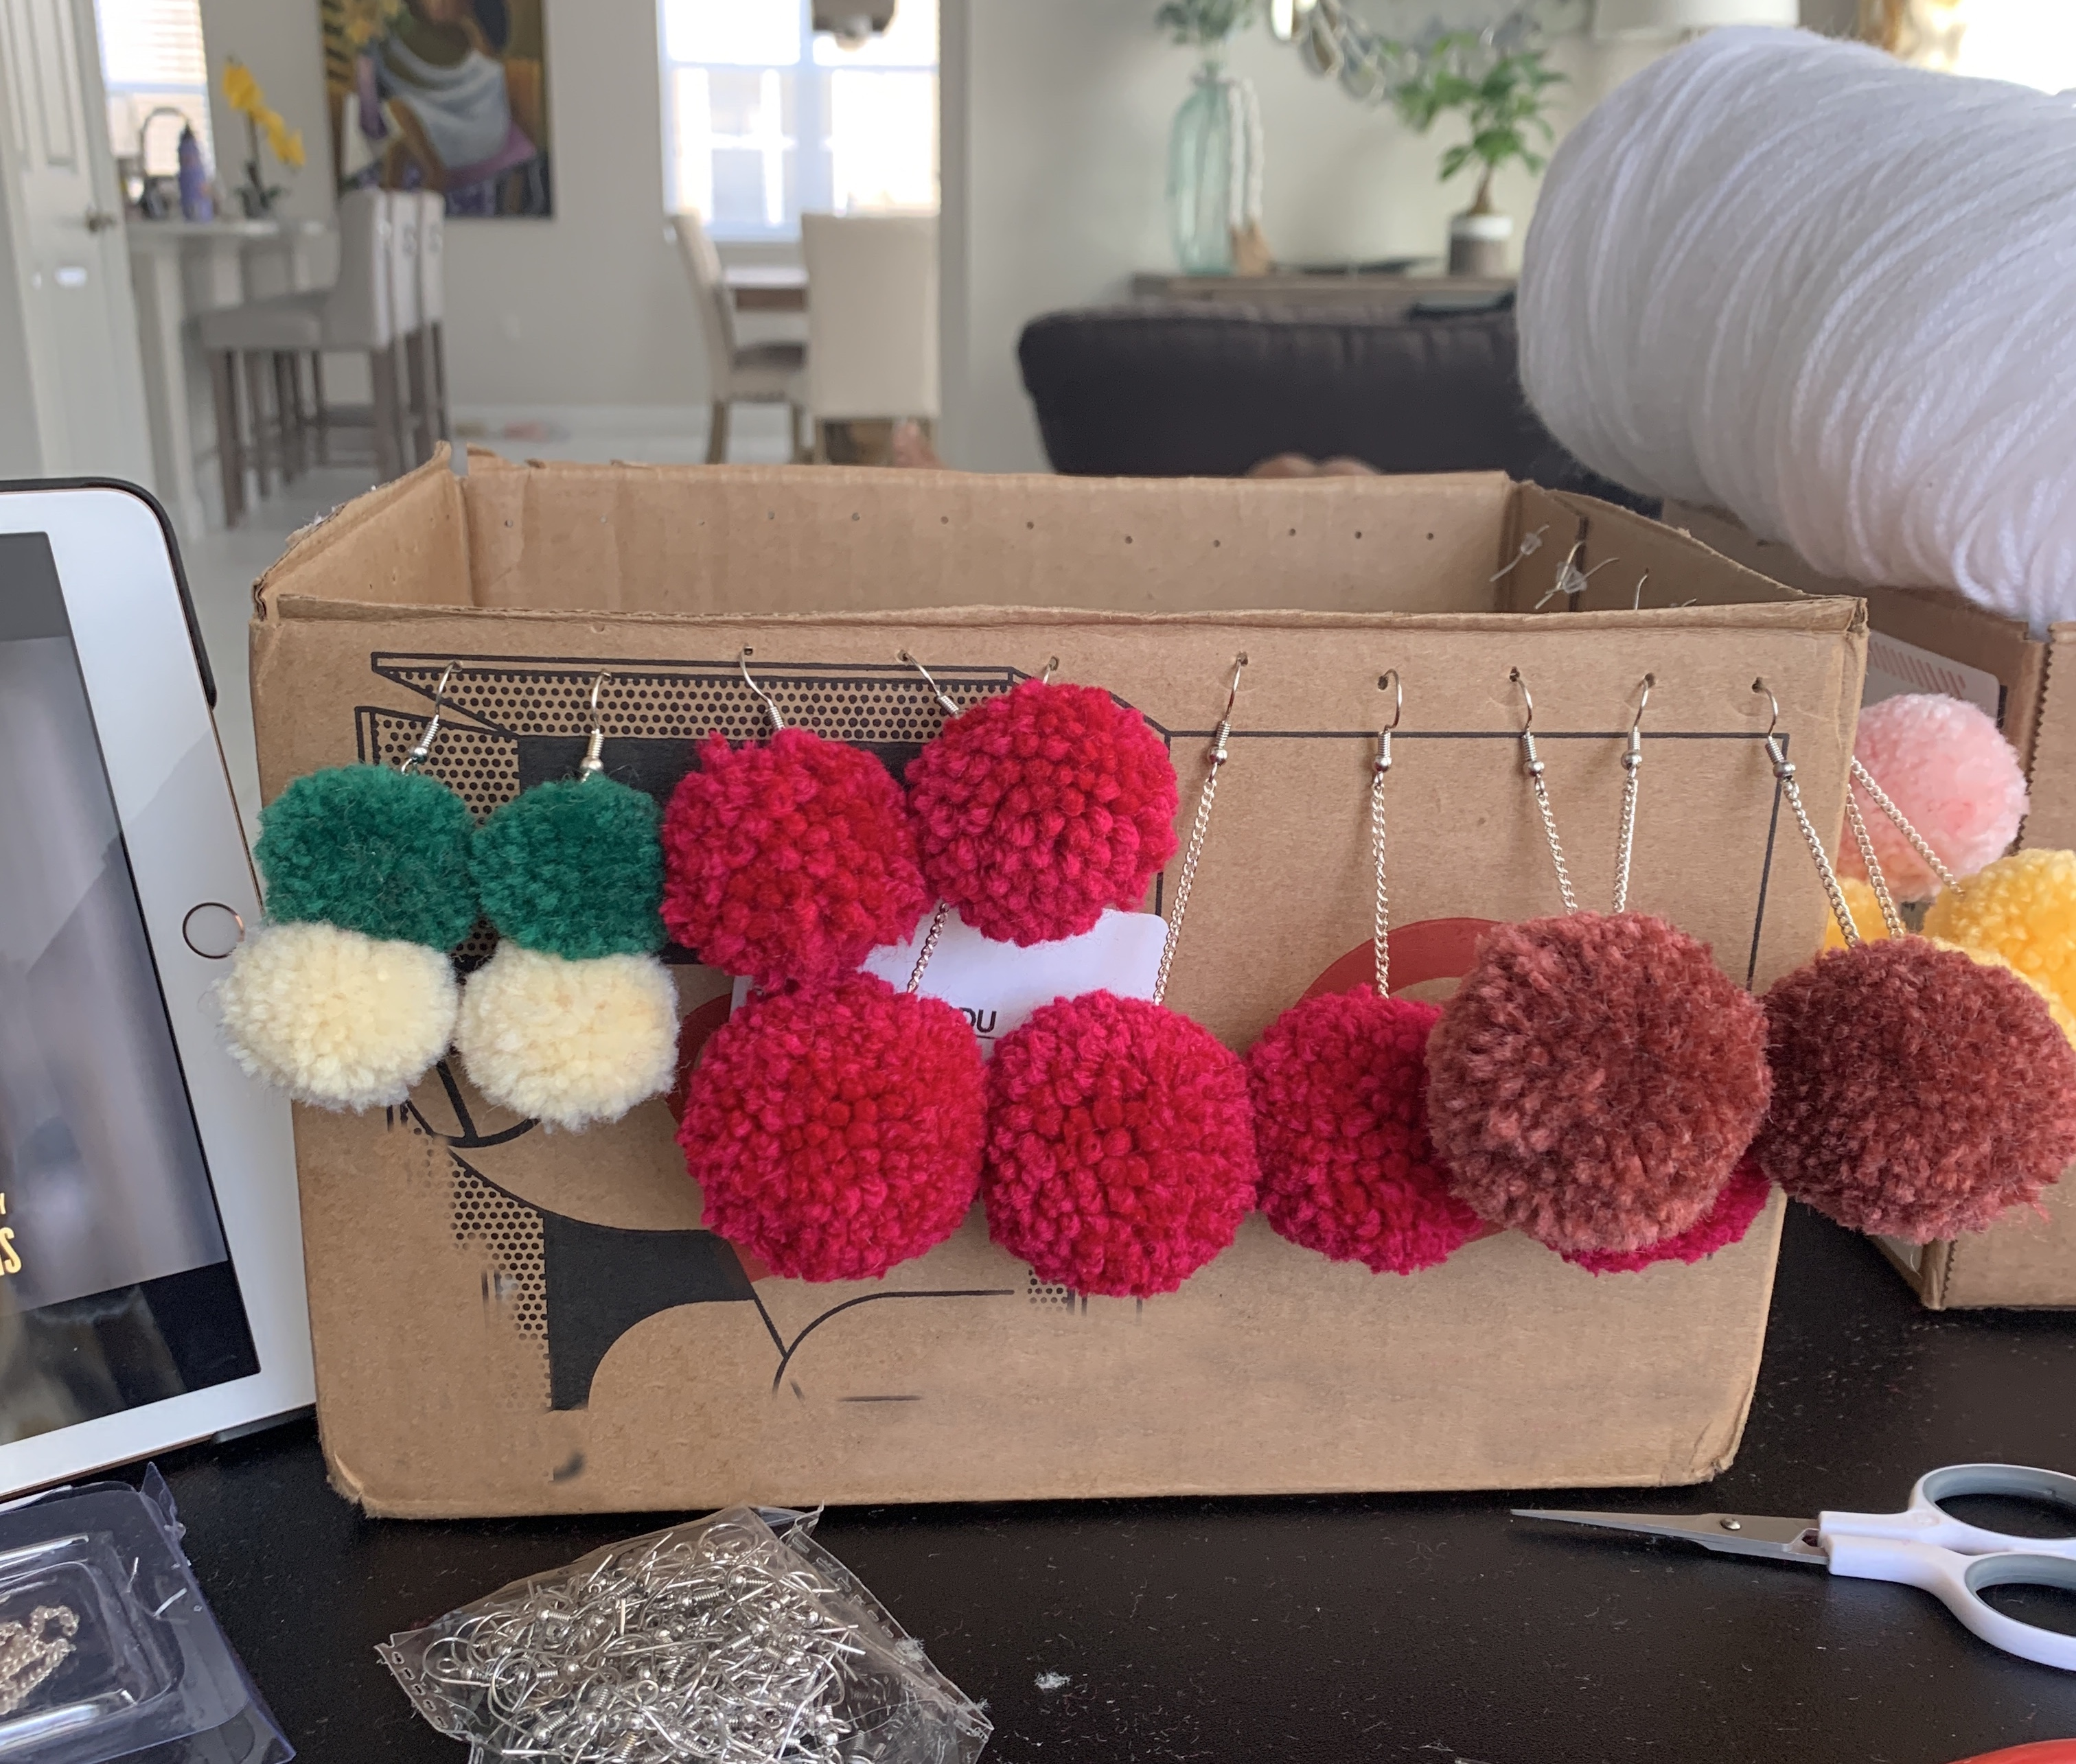 Variety of Pom-pom earrings dangling from a cardboard box